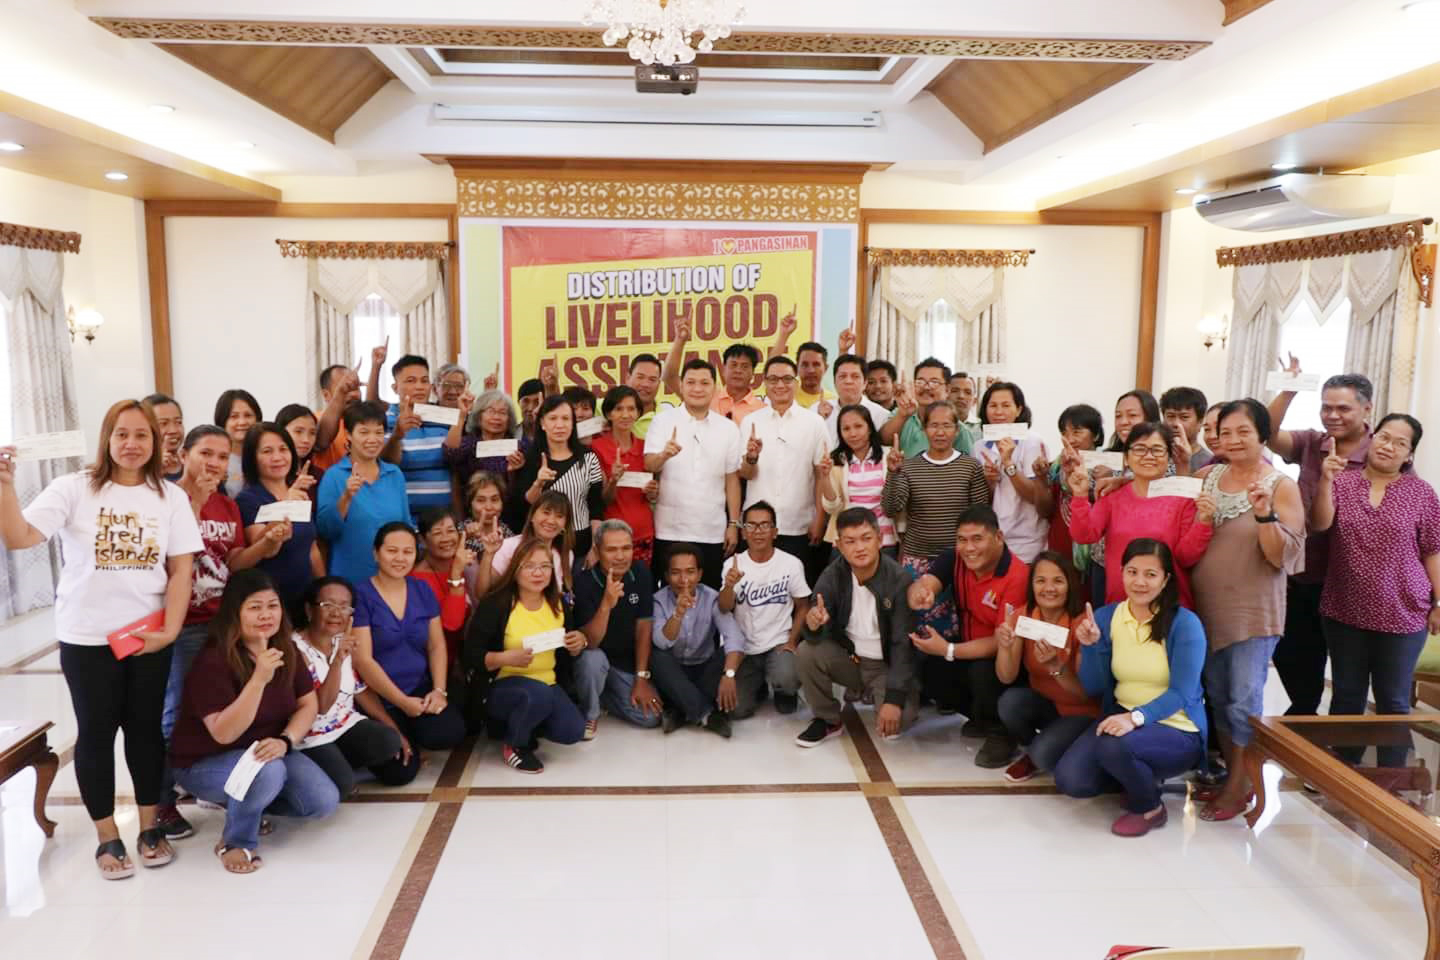 governor amado espino jr. leads the distribution of livelihood cheque